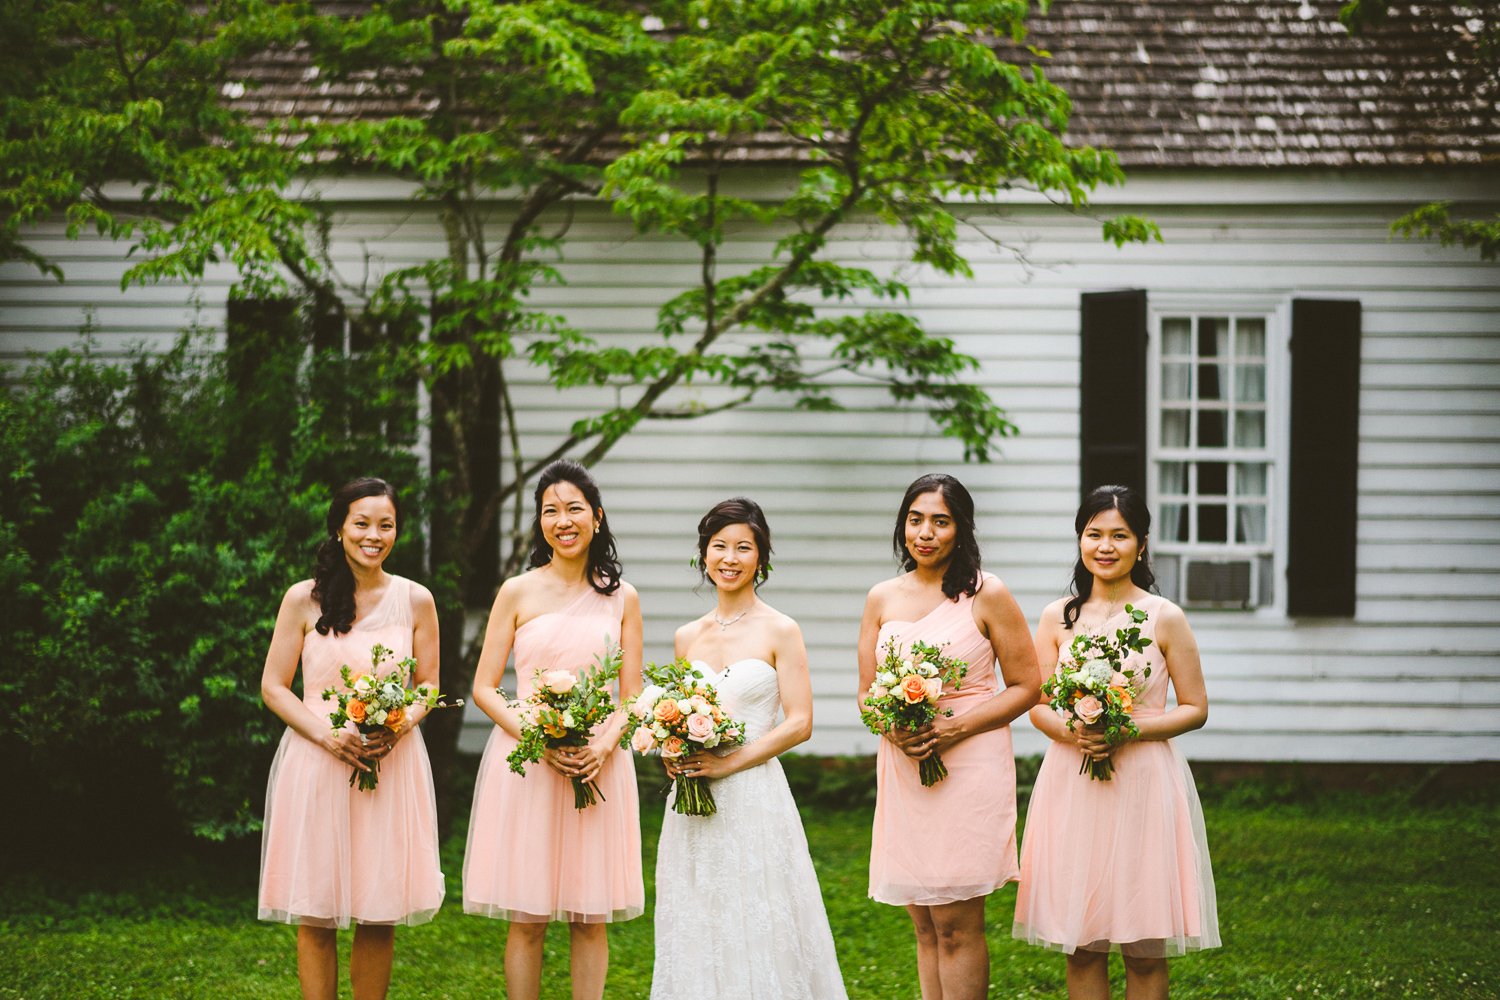 019 - bride and bridesmaids portraits.jpg